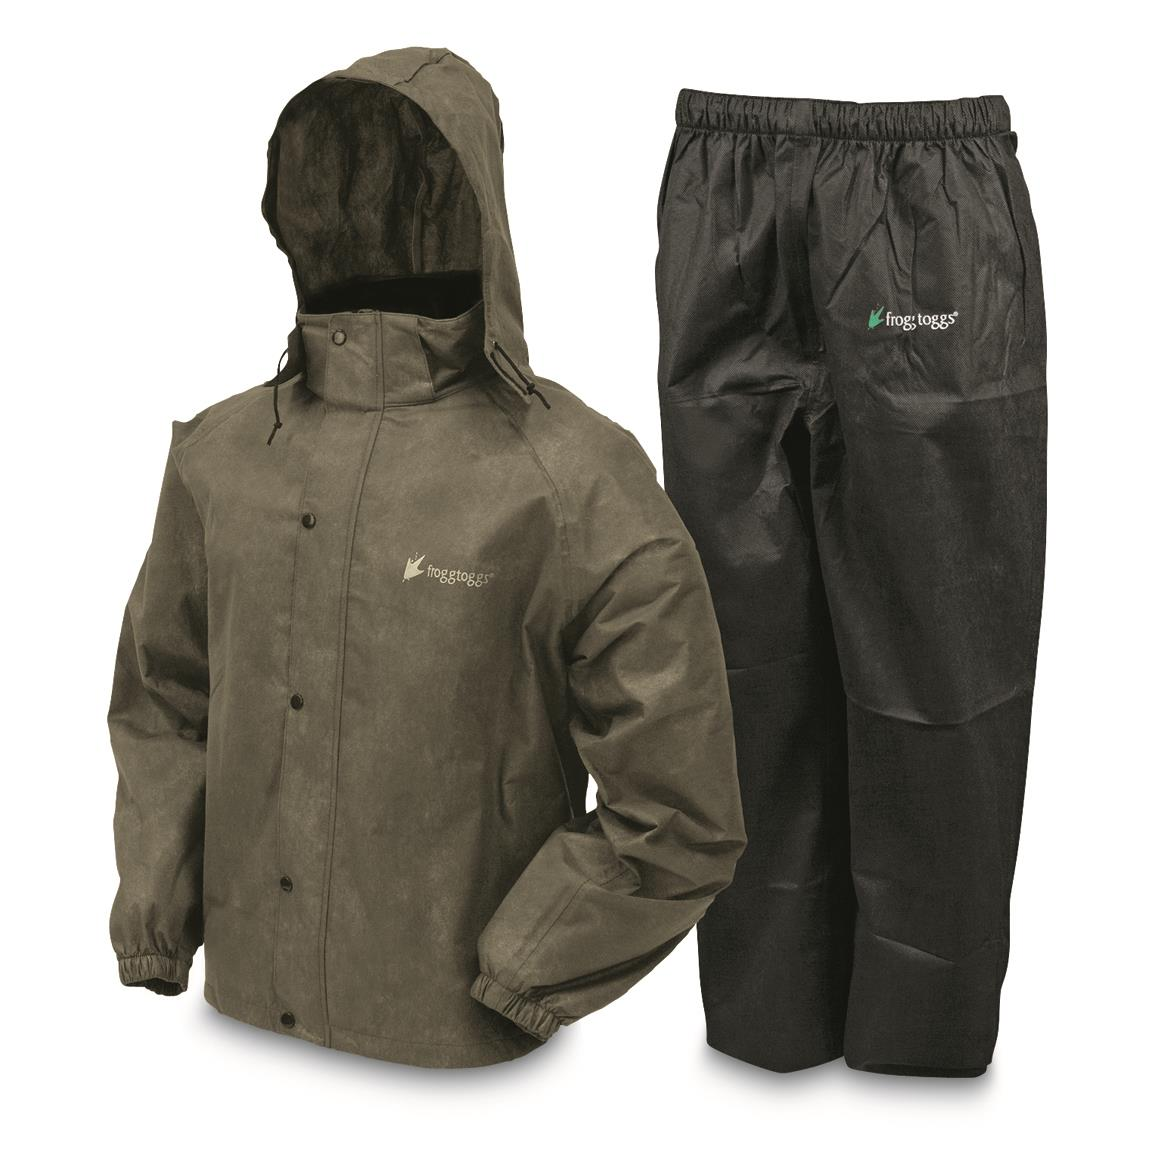 Frogg Toggs Men's Waterproof All Sport Rain Suit, Stone/Black